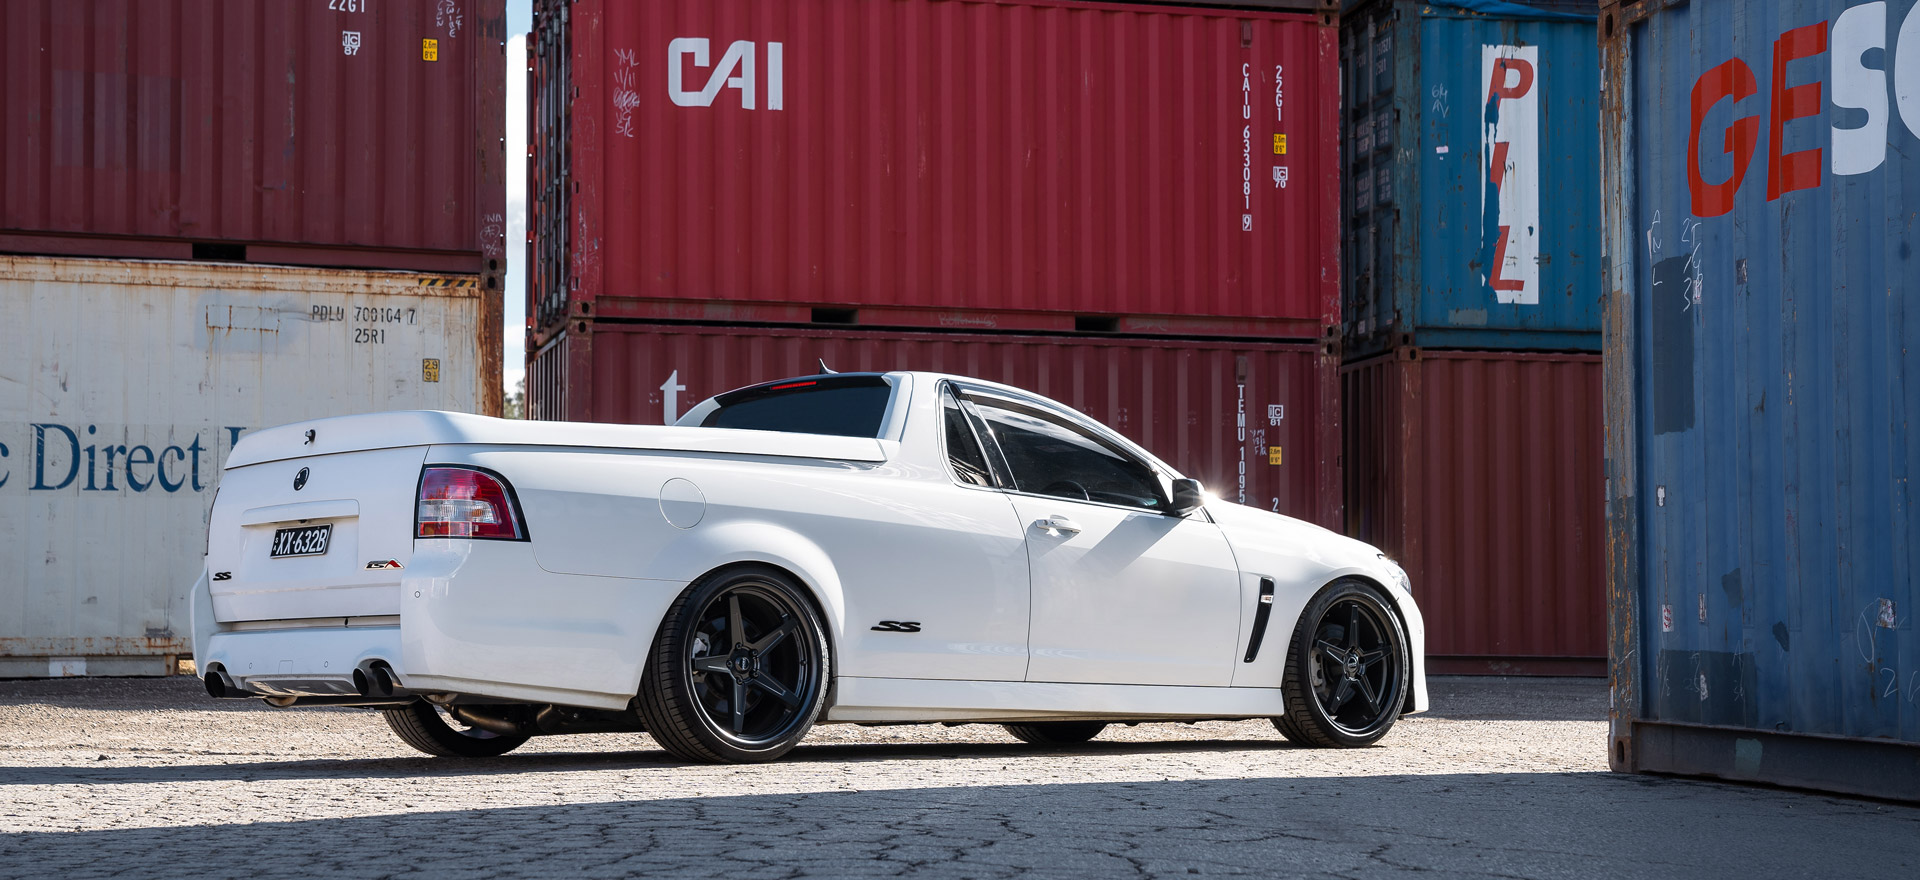 RF5 flow forged wheel on white Commodore Ute Hero Rear header